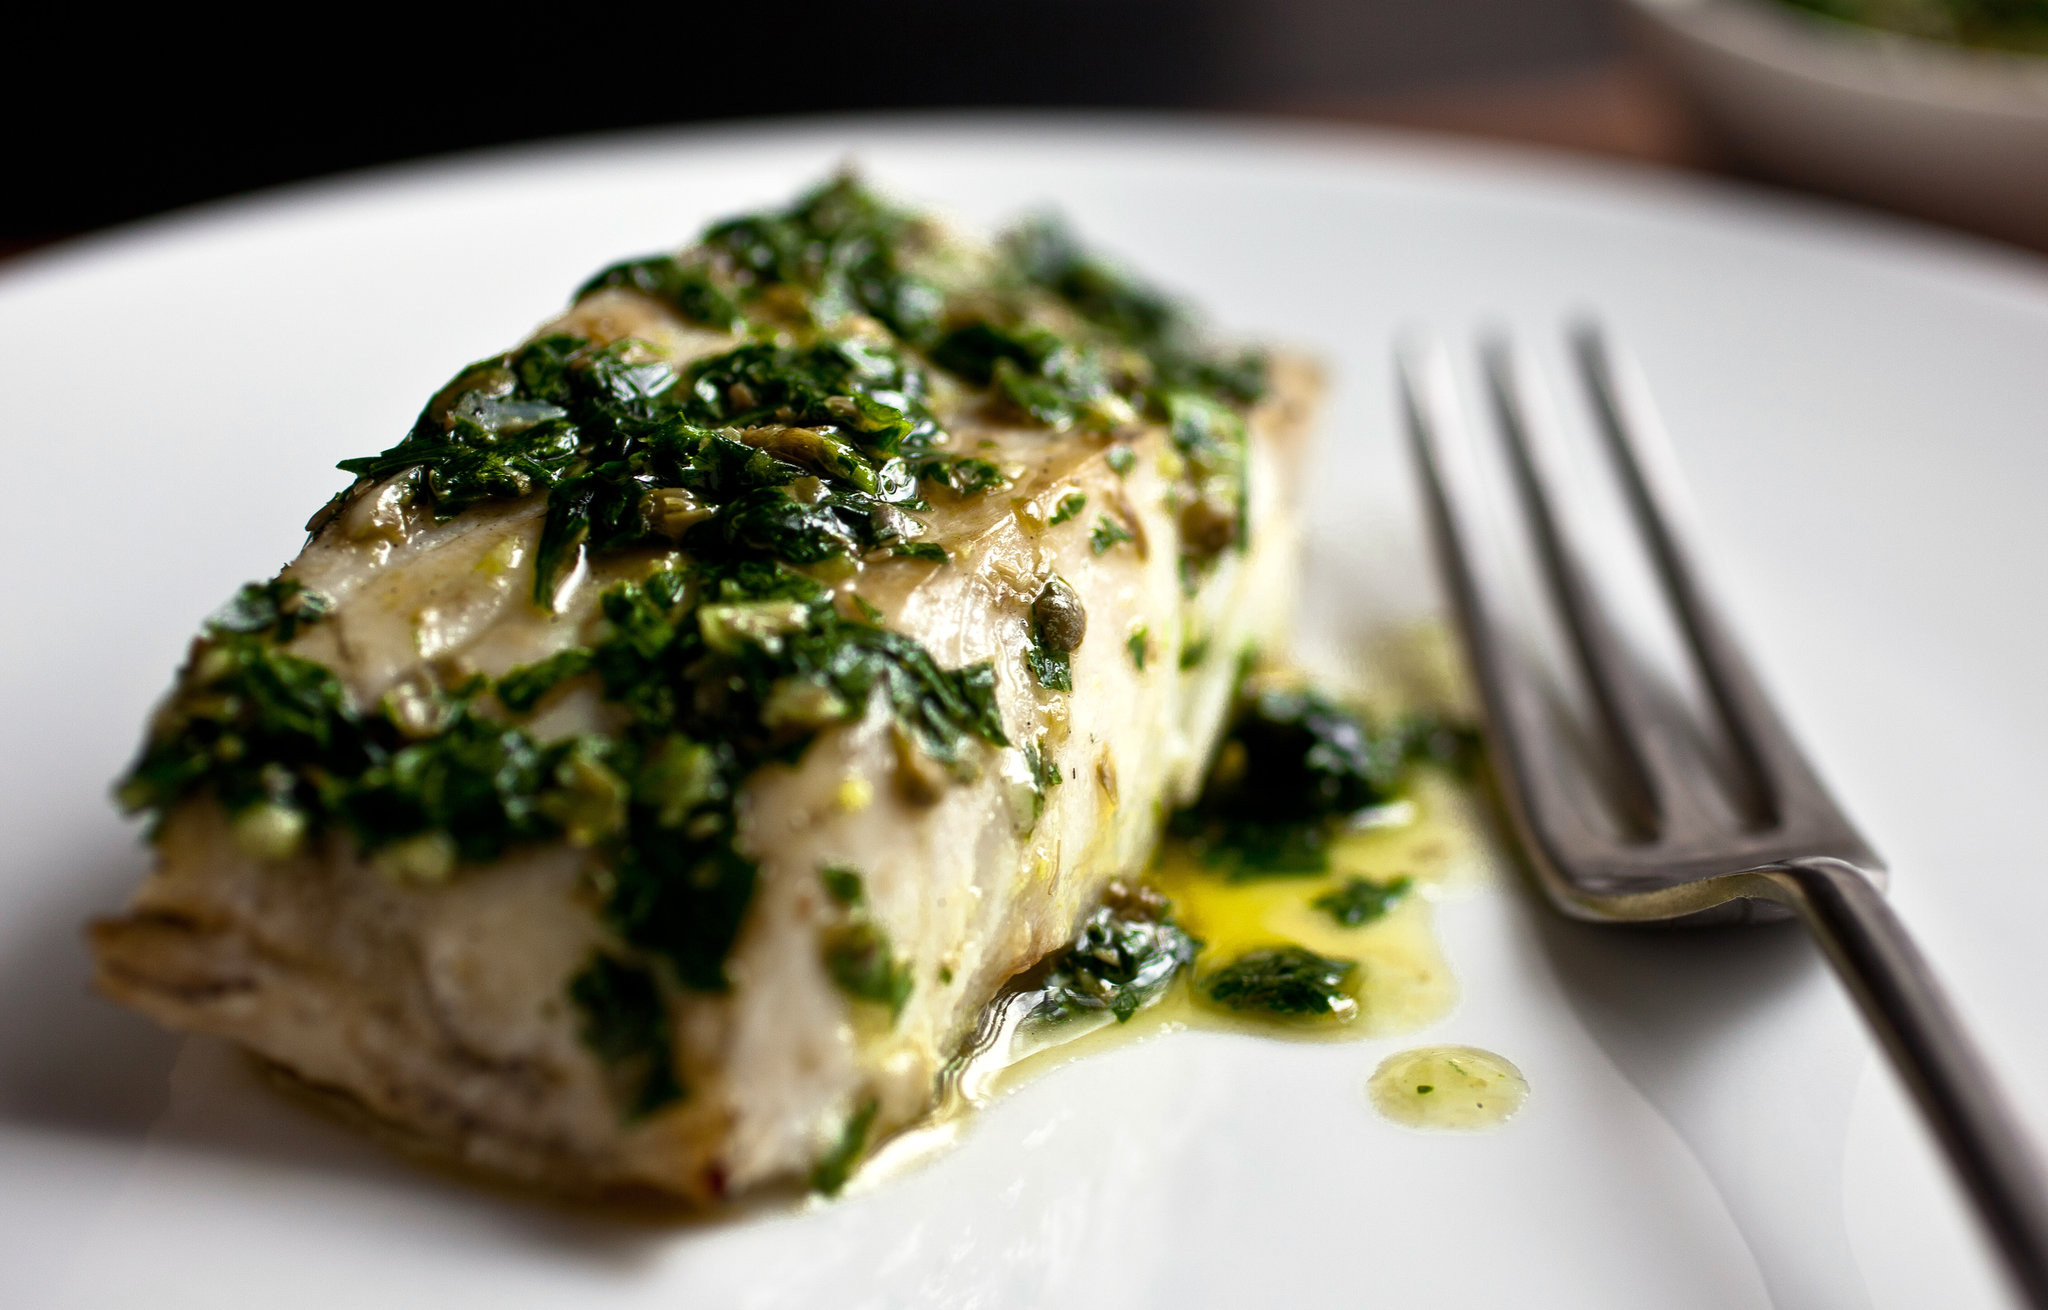 Grilled Cod Fish Recipes Healthy  Parsley Salsa Verde With Grilled Cod Recipe NYT Cooking